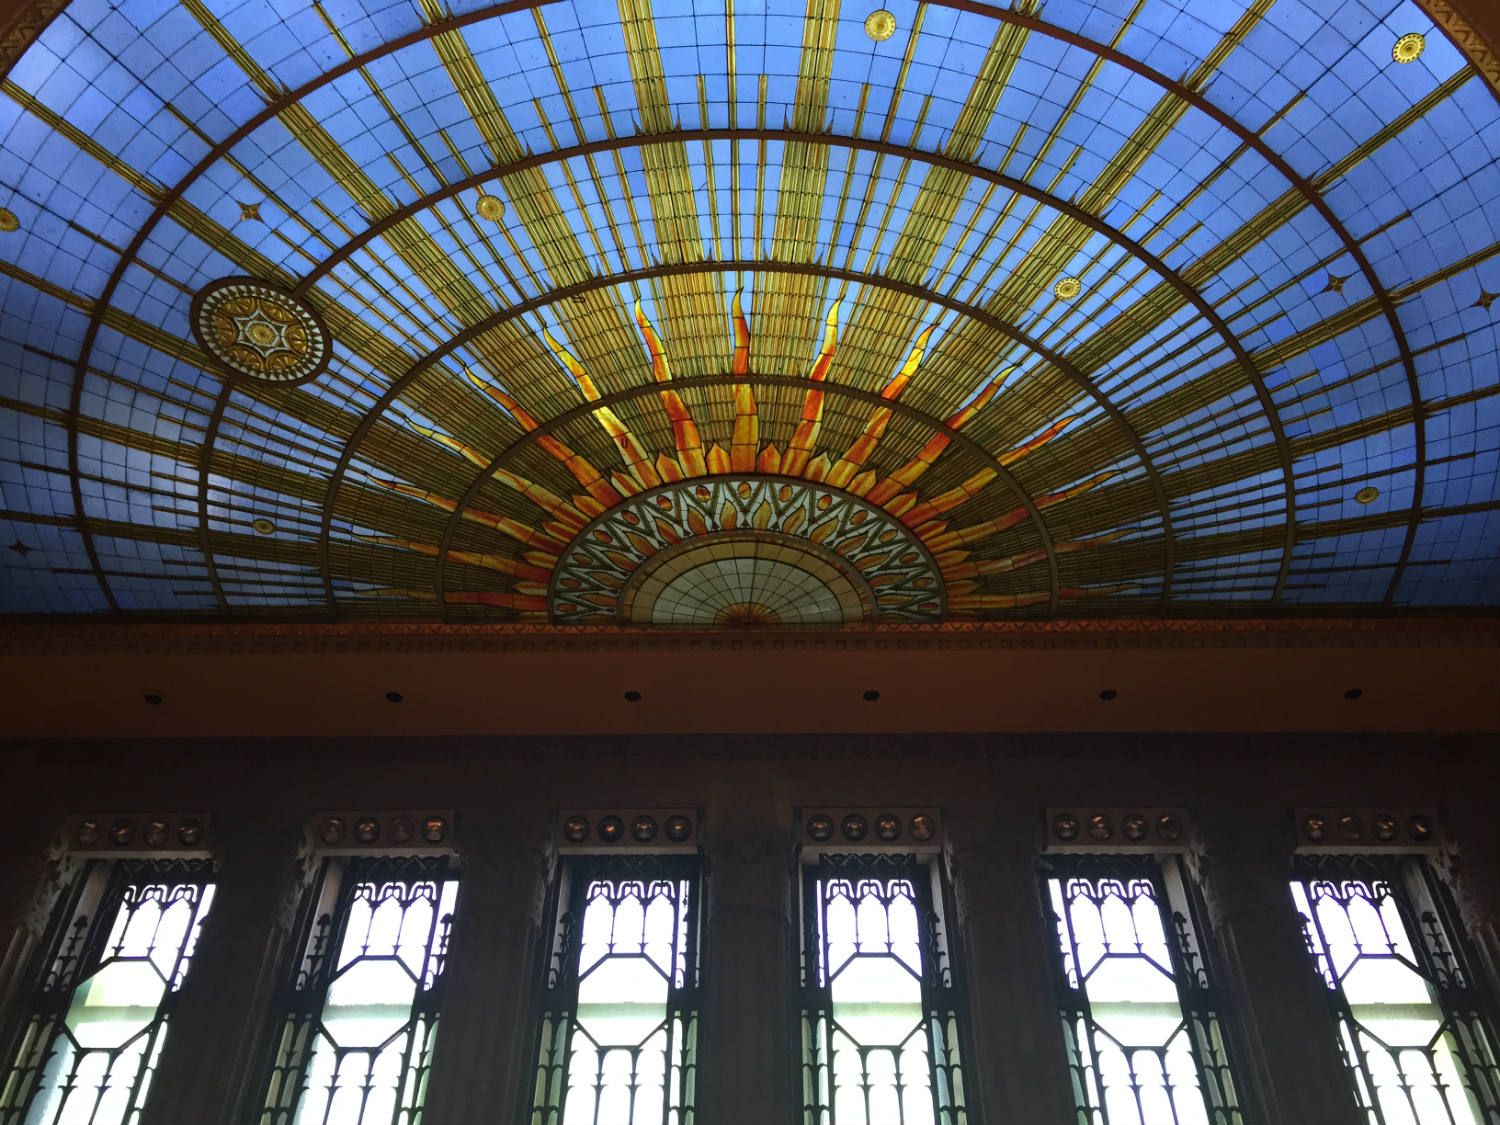 Stained Glass Ceiling in Council Chamber in Buffalo City Hall